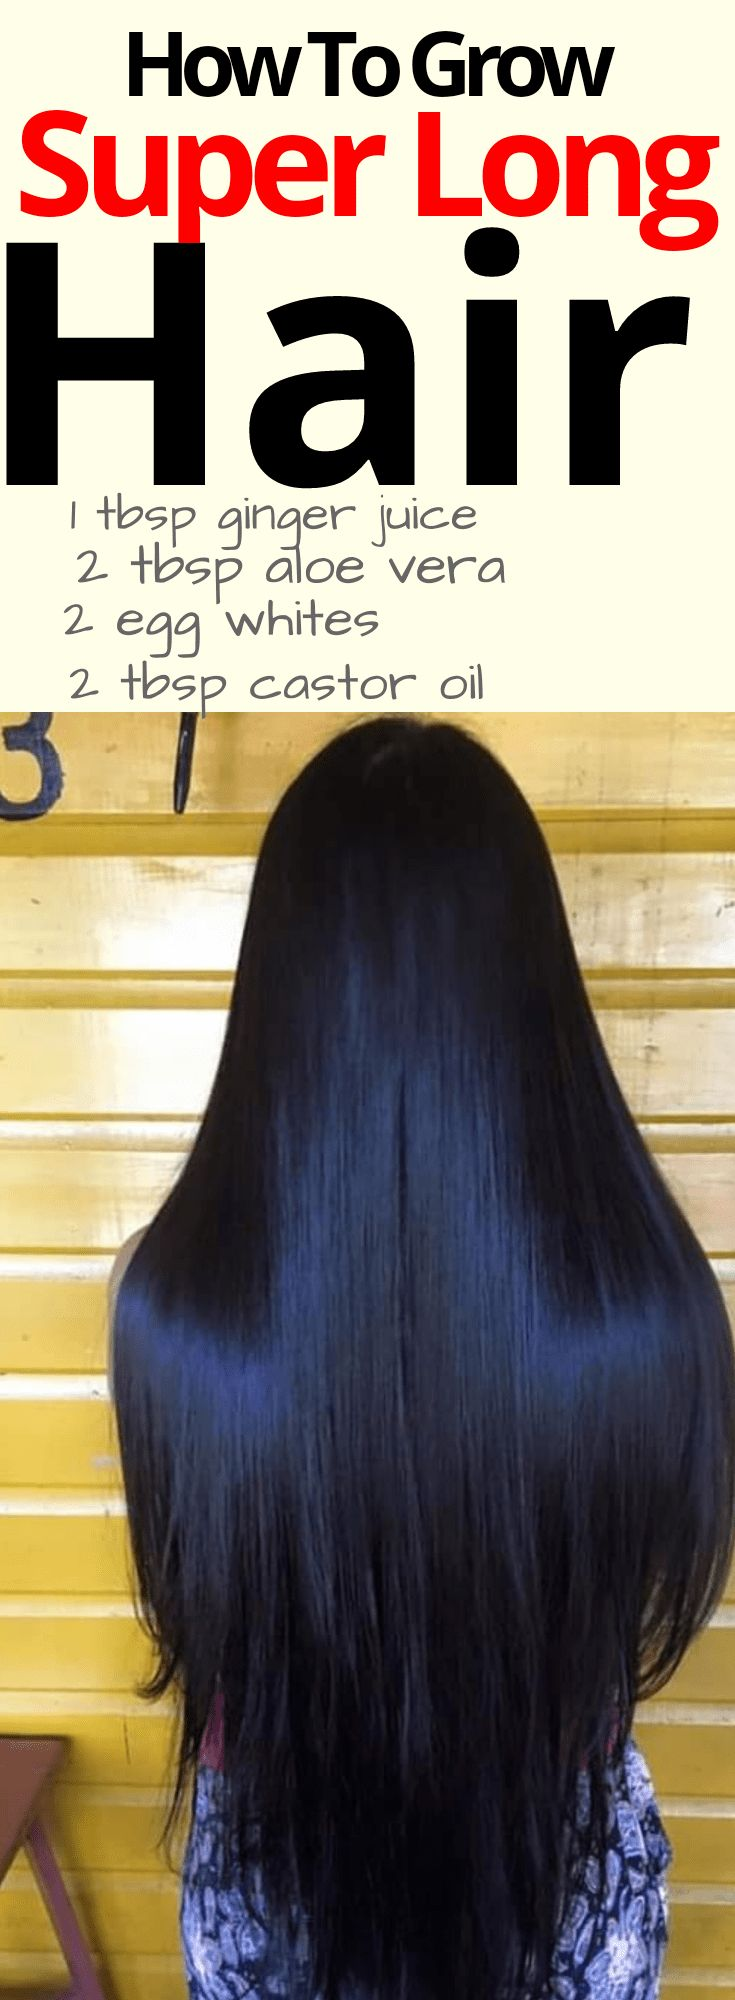 How to Grow Super Long Hair. Grow long hair fast, with a diy hair growth mask. This mask has egg, aloe vera, castor oil and ginger juice, which grow's hair fast